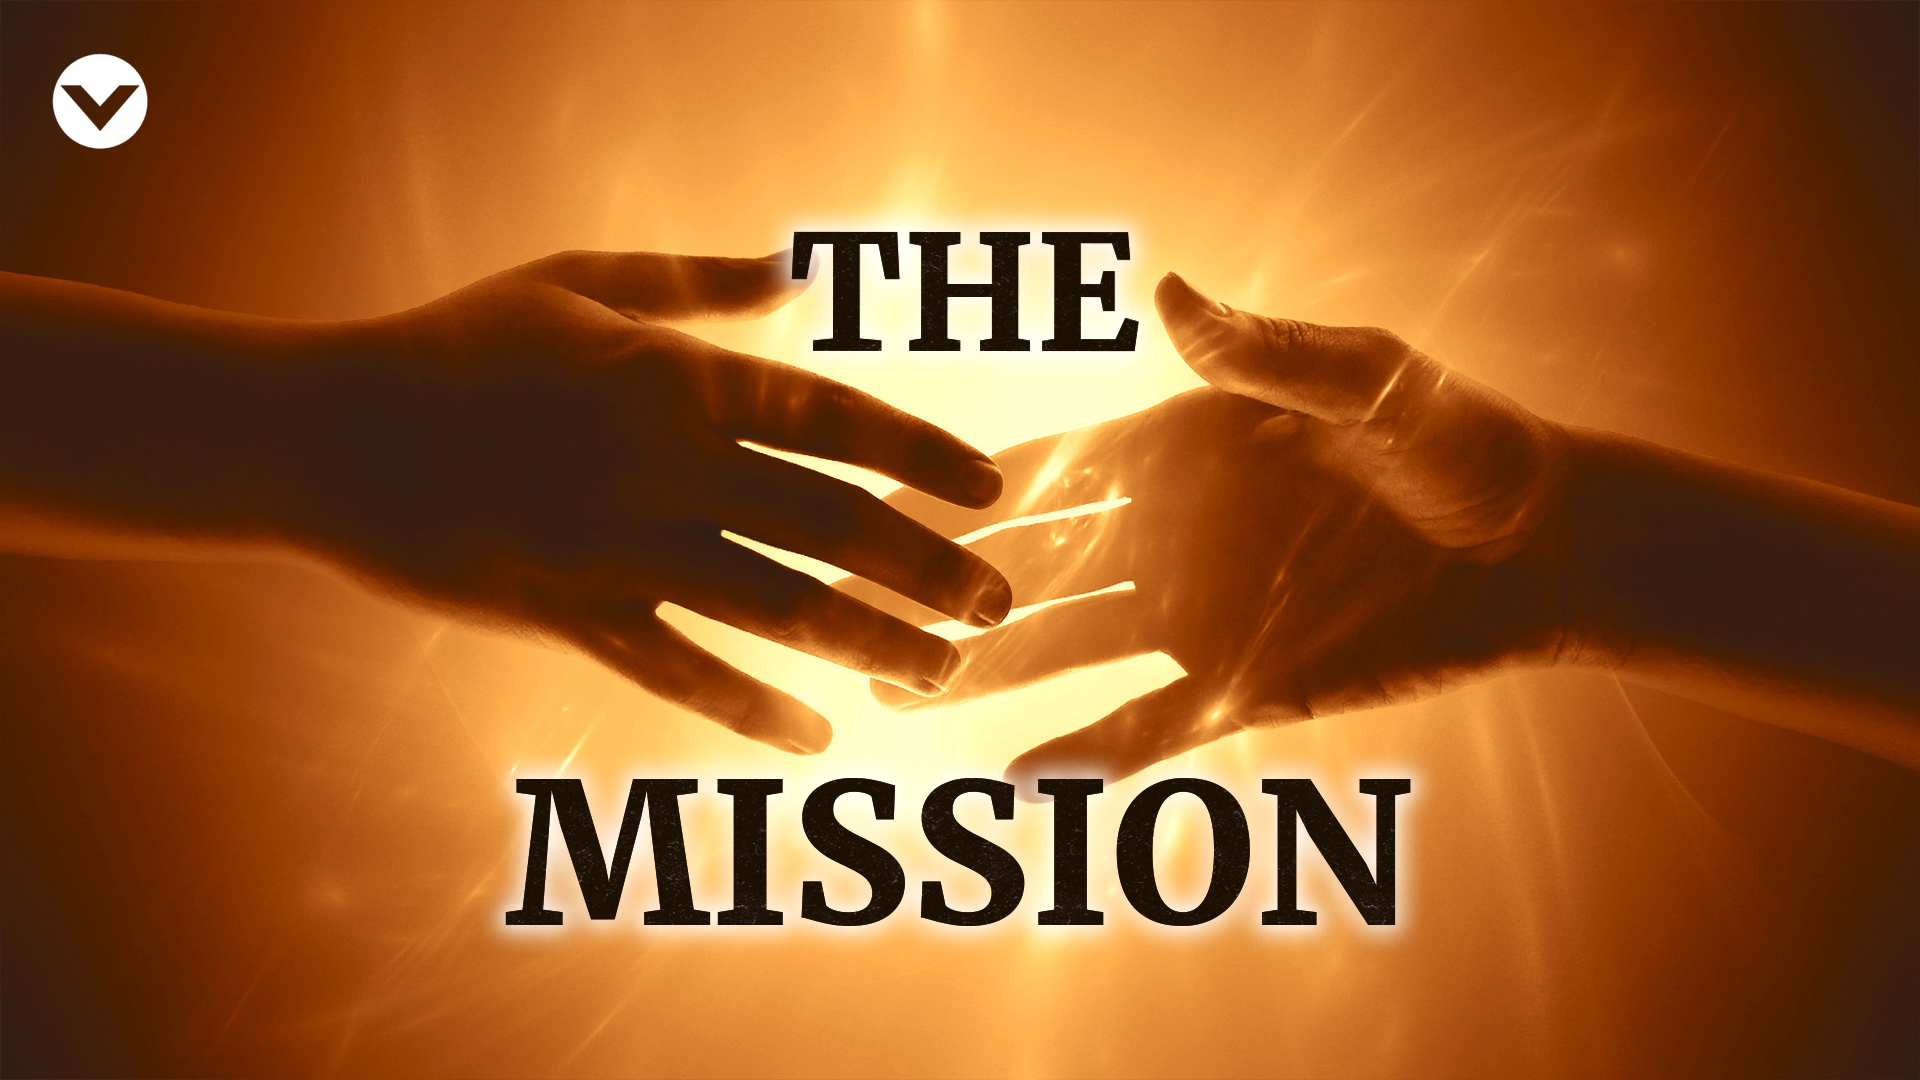 The-Mission-Series-Slide-2